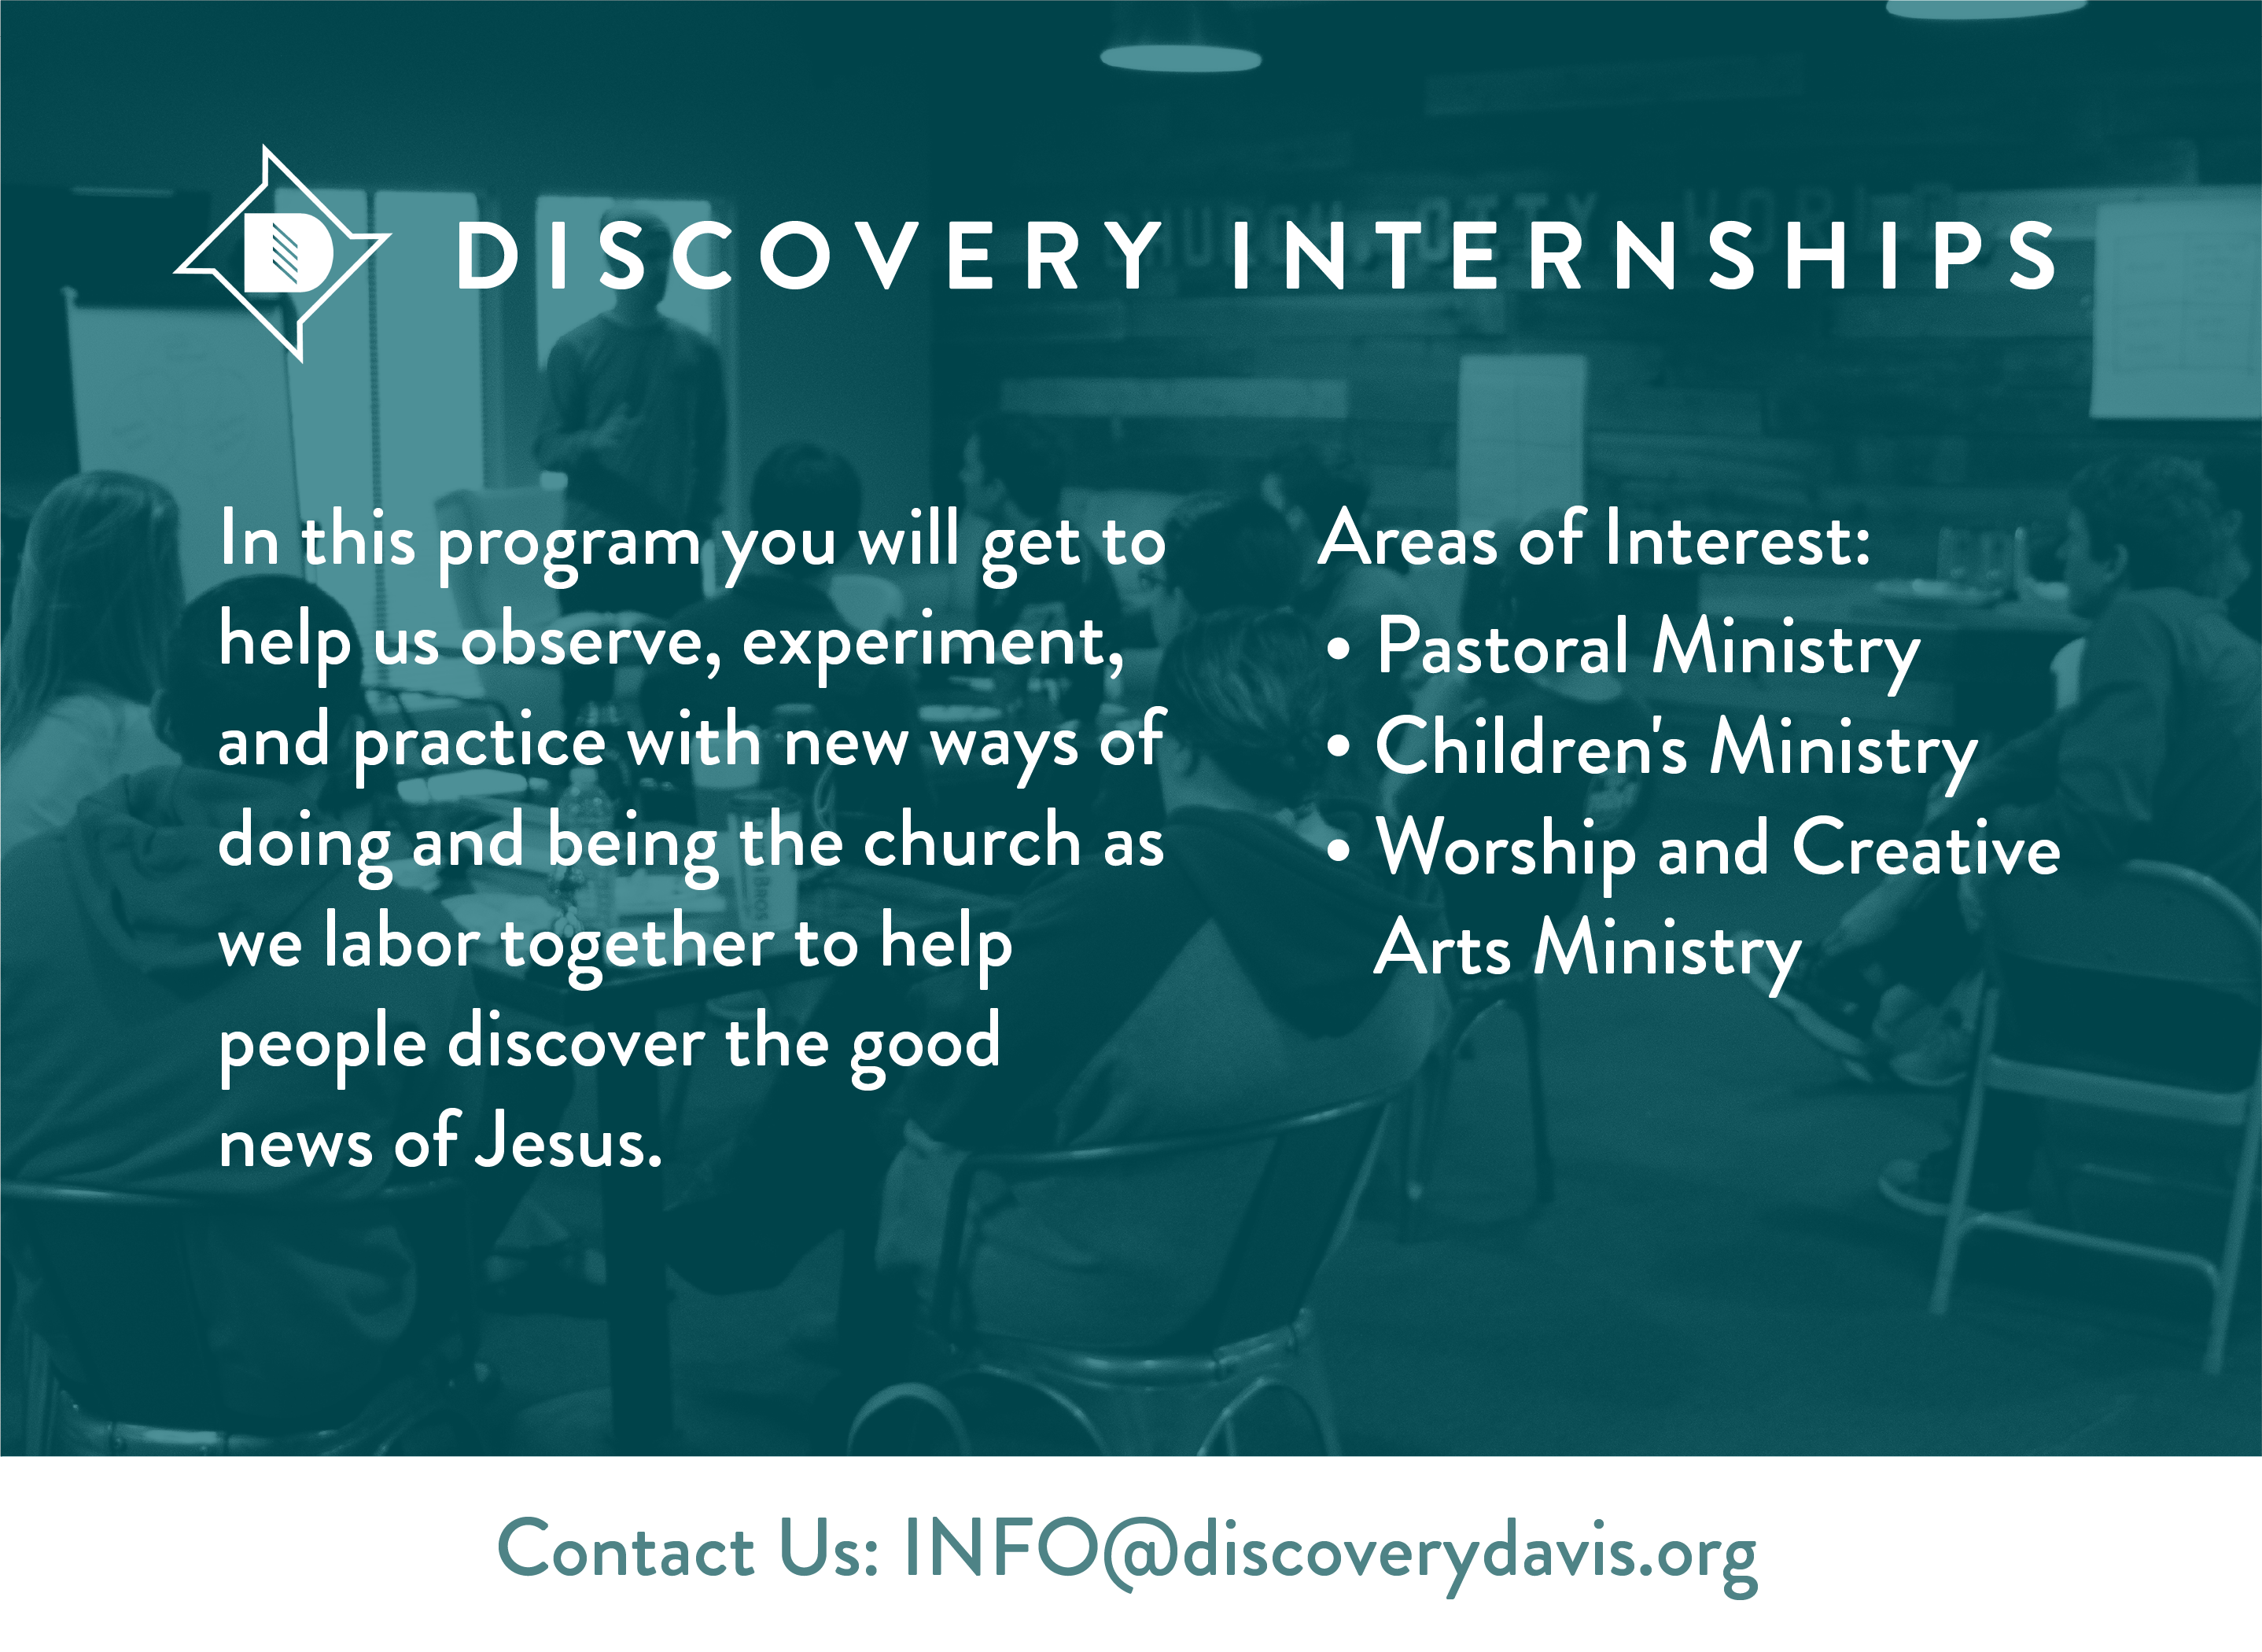 discovery-internships-small-2-04 image